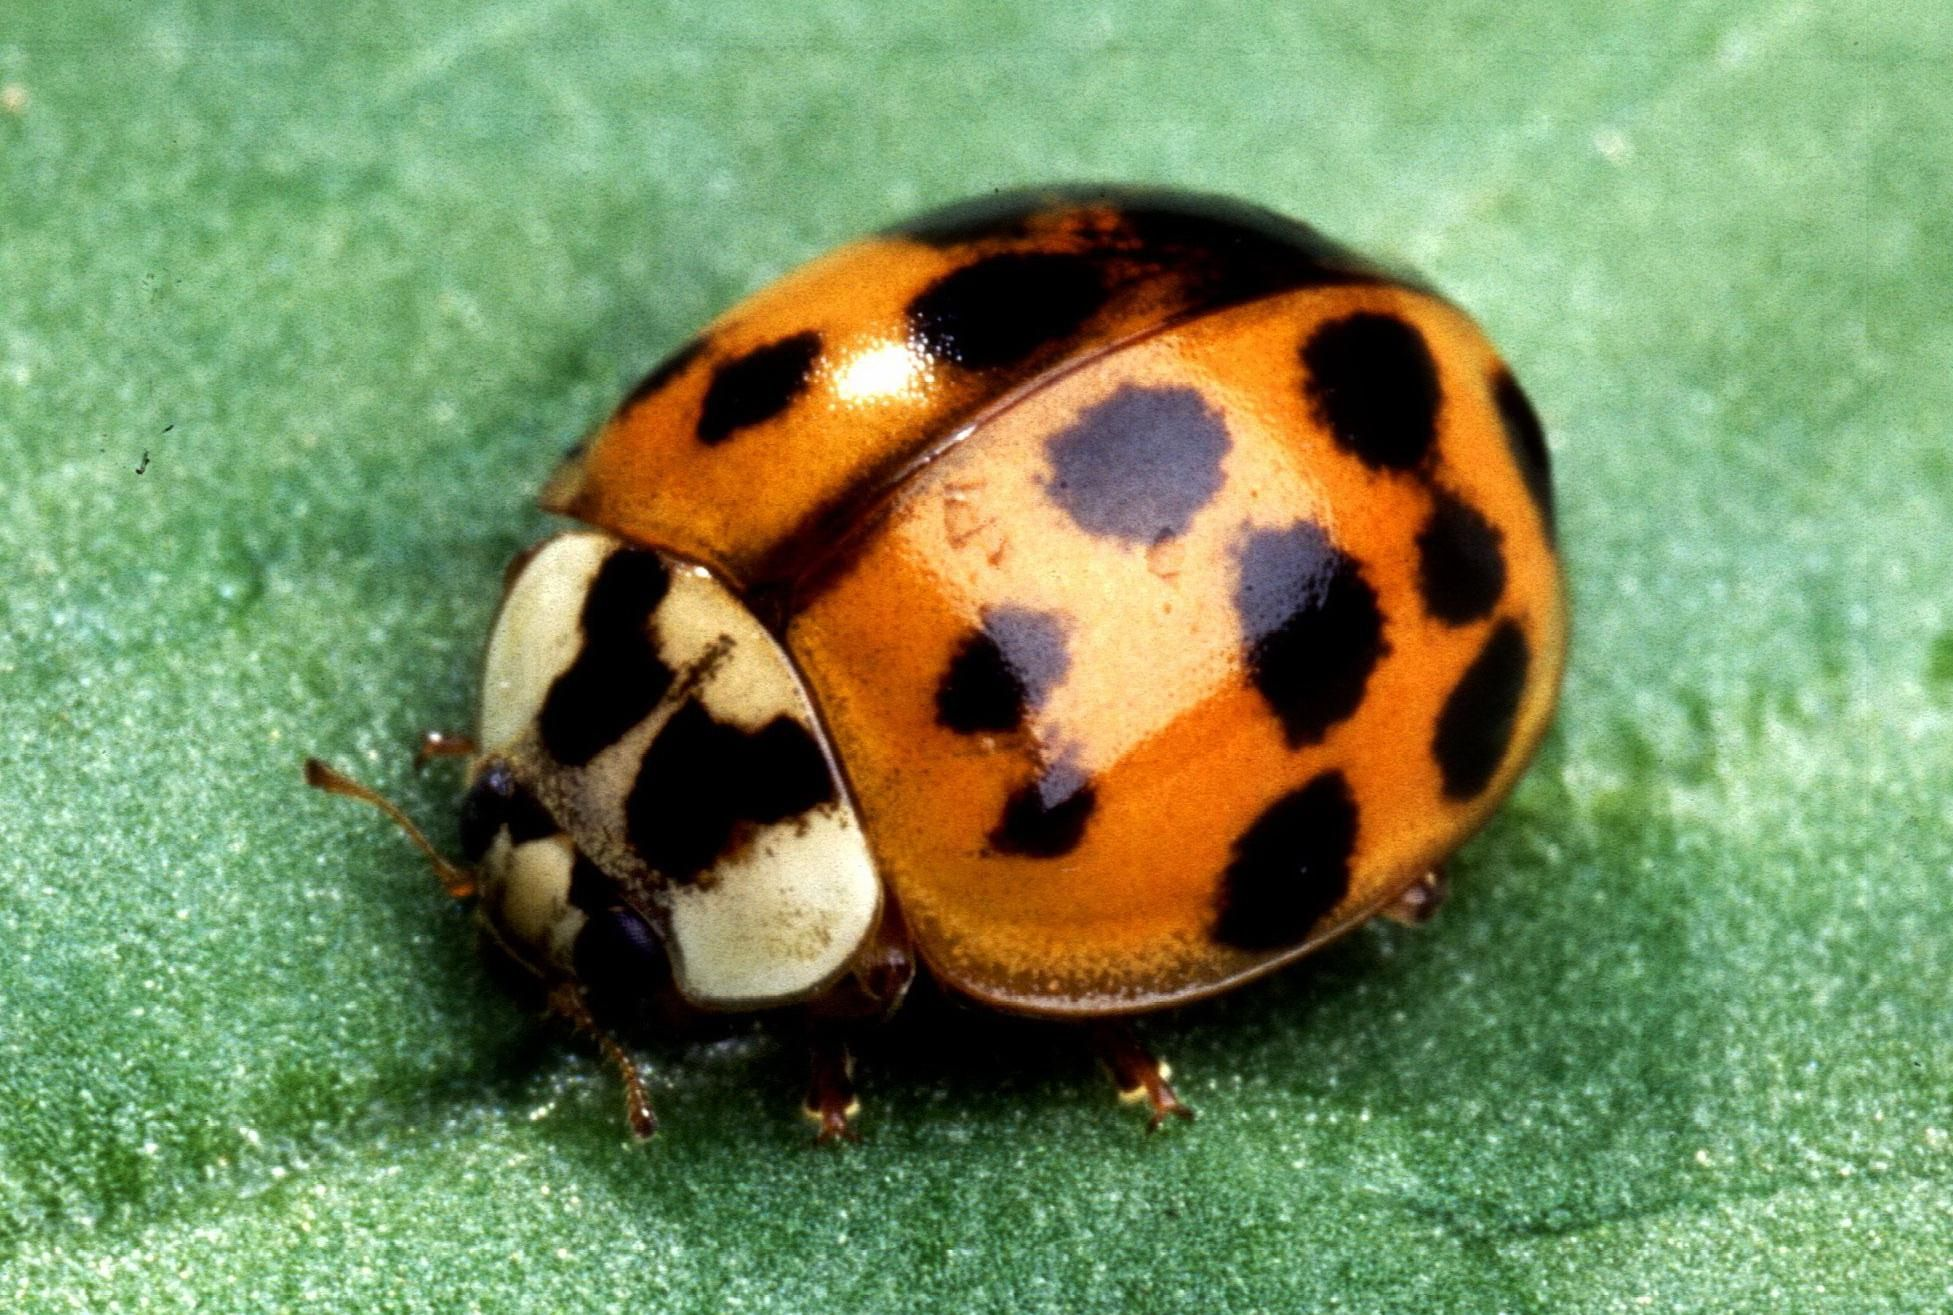 Bugs that look like ladybugs 11